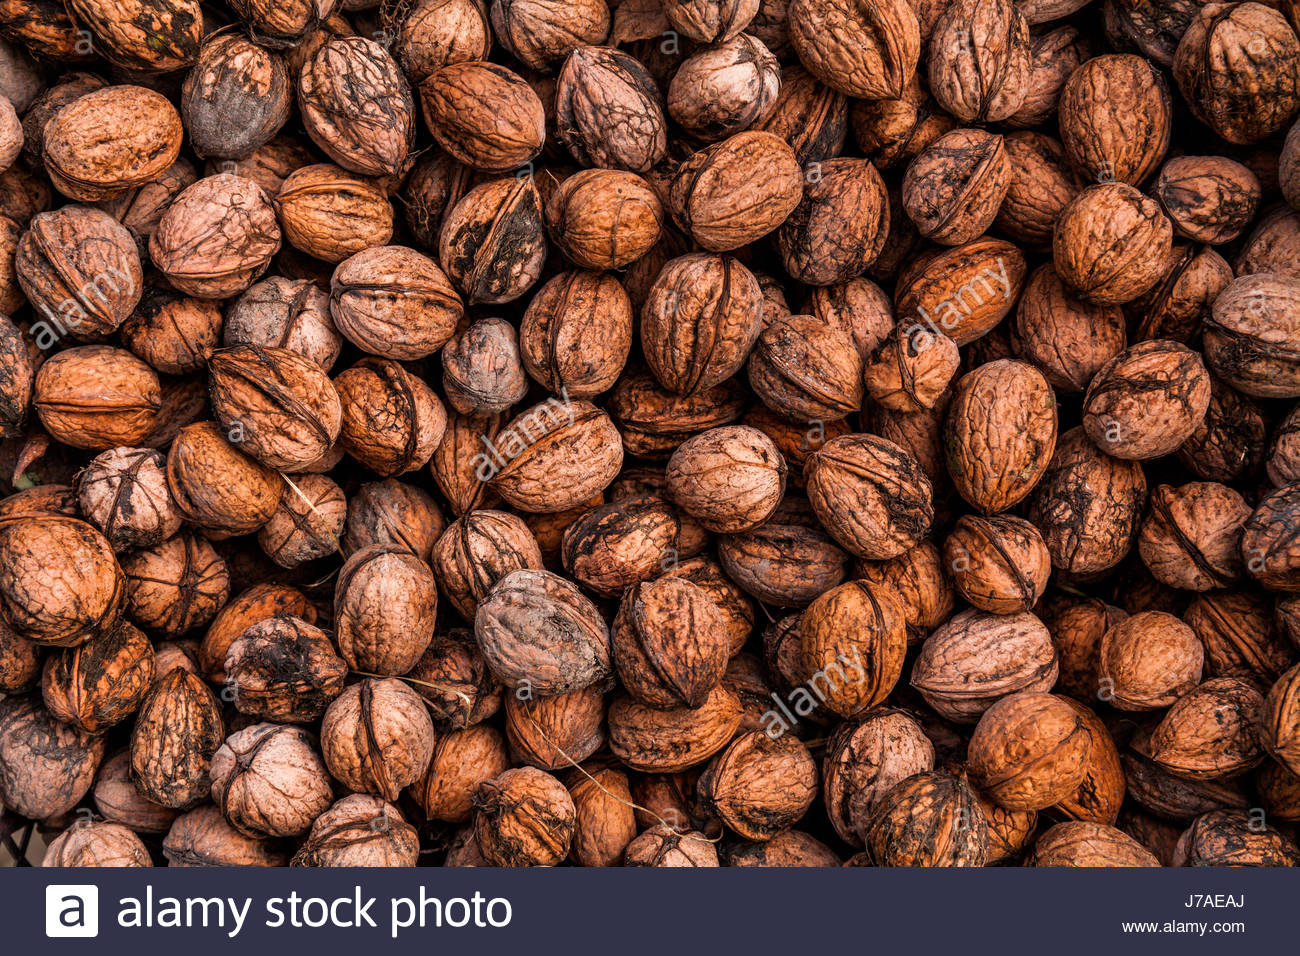 Background of walnuts. Many nuts - Stock Image